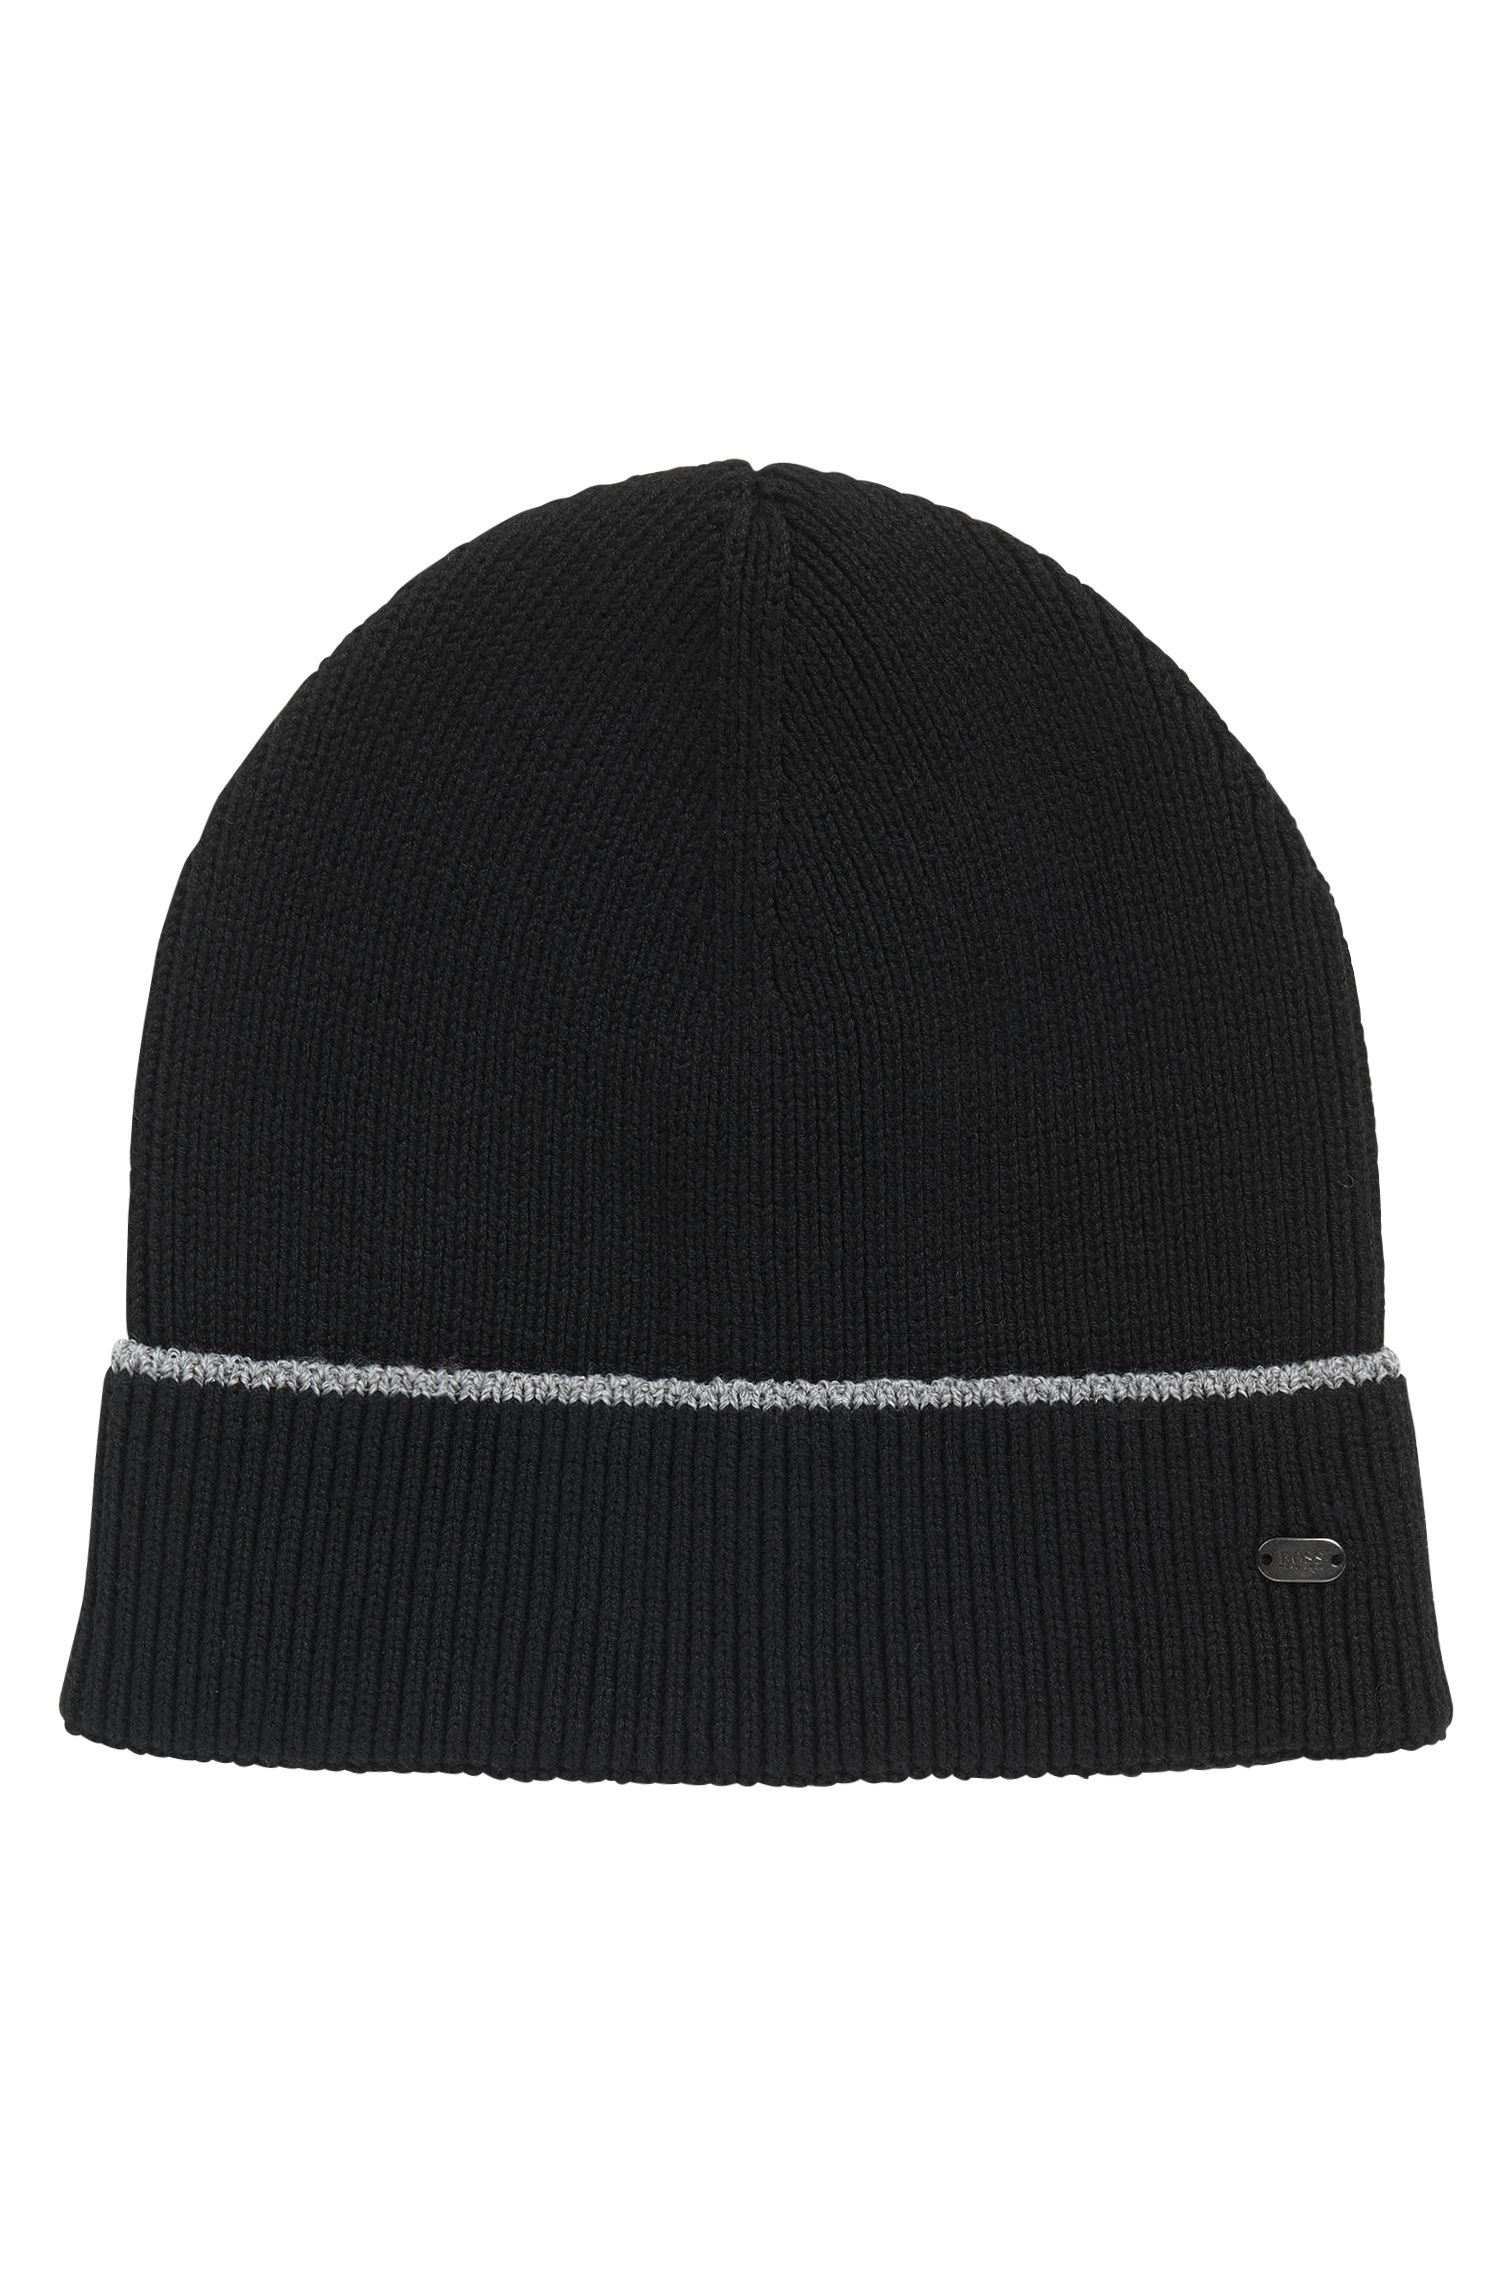 Cotton-blend beanie hat with reflective stripe